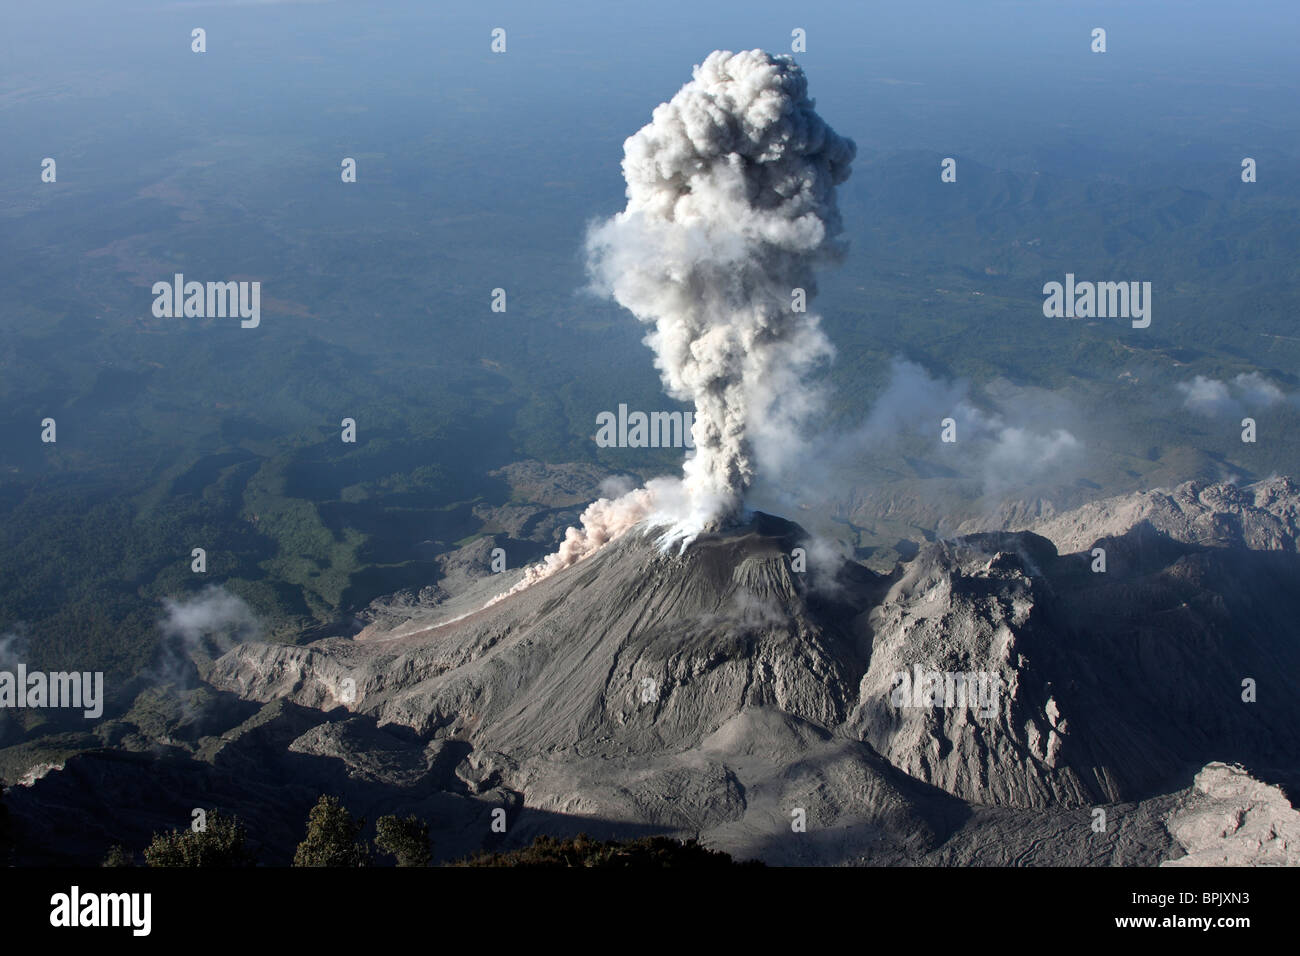 January 3, 2009 - Santiaguito ash eruption, Guatemala. - Stock Image